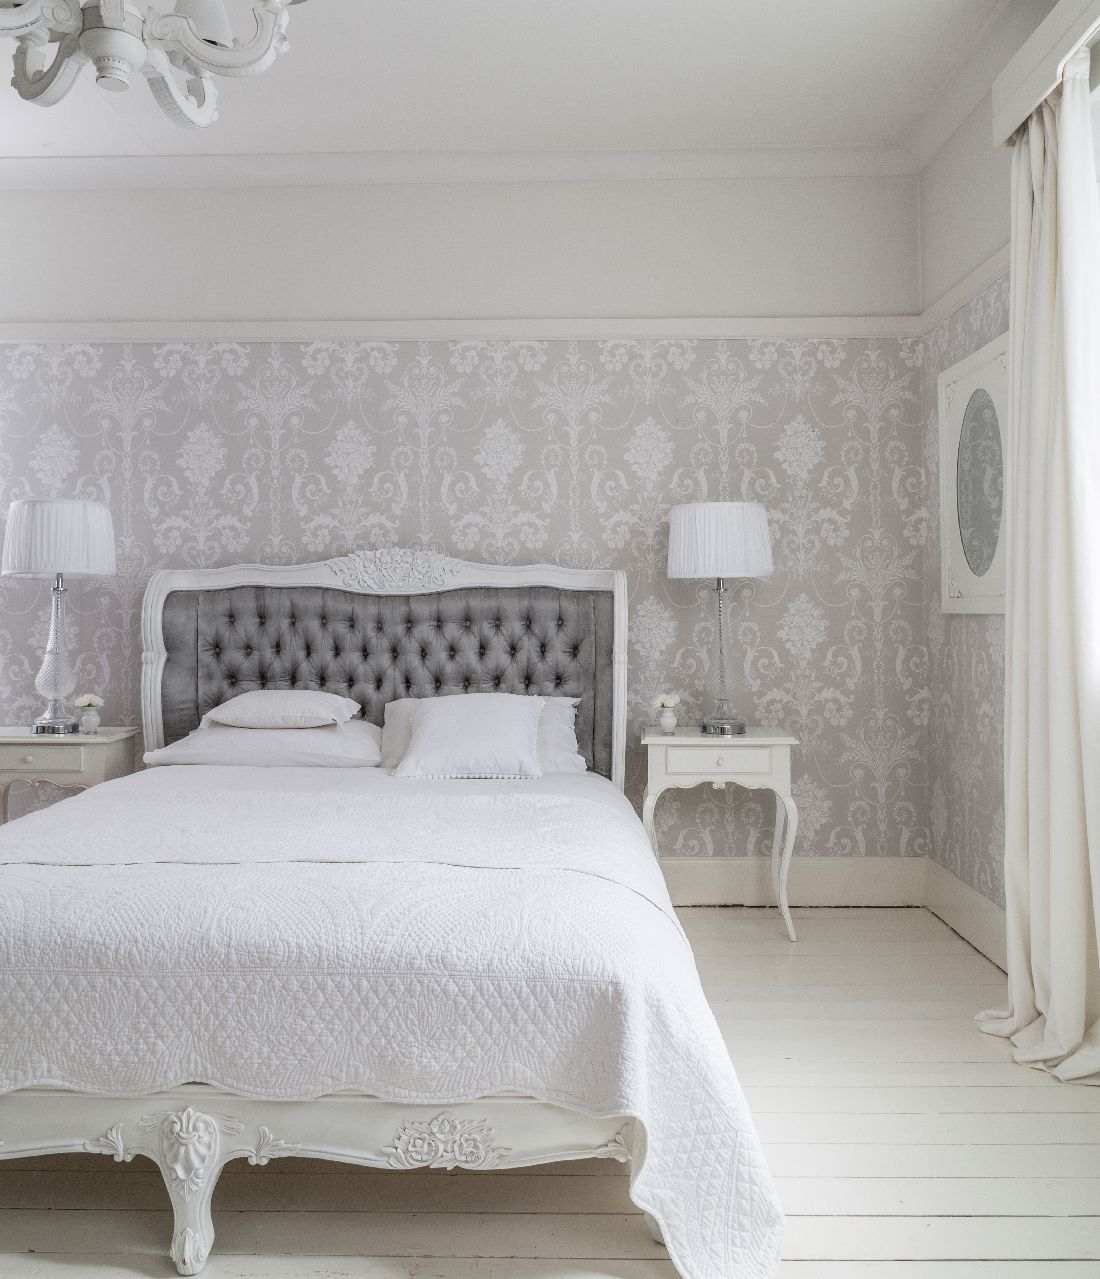 13the-french-bedroom-co_bergerac-silk-upholstered-bed-lifestyle.jpg